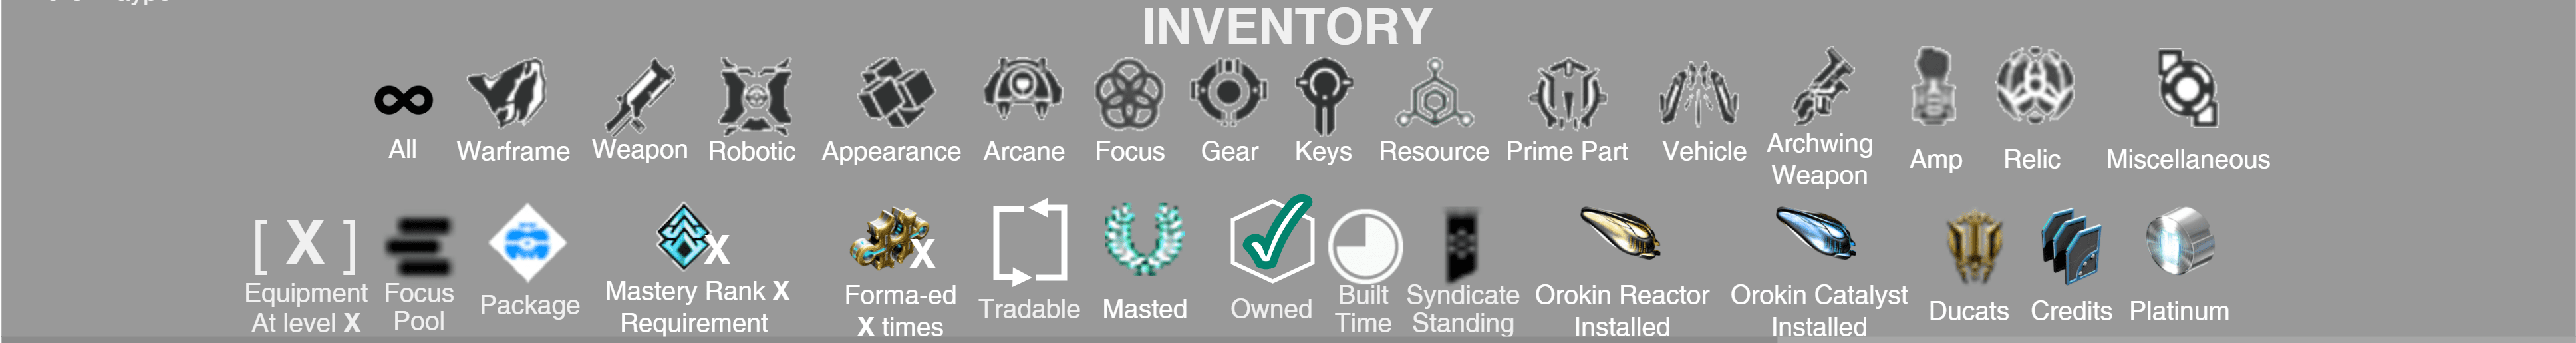 Warframe Inventory and Item Icons